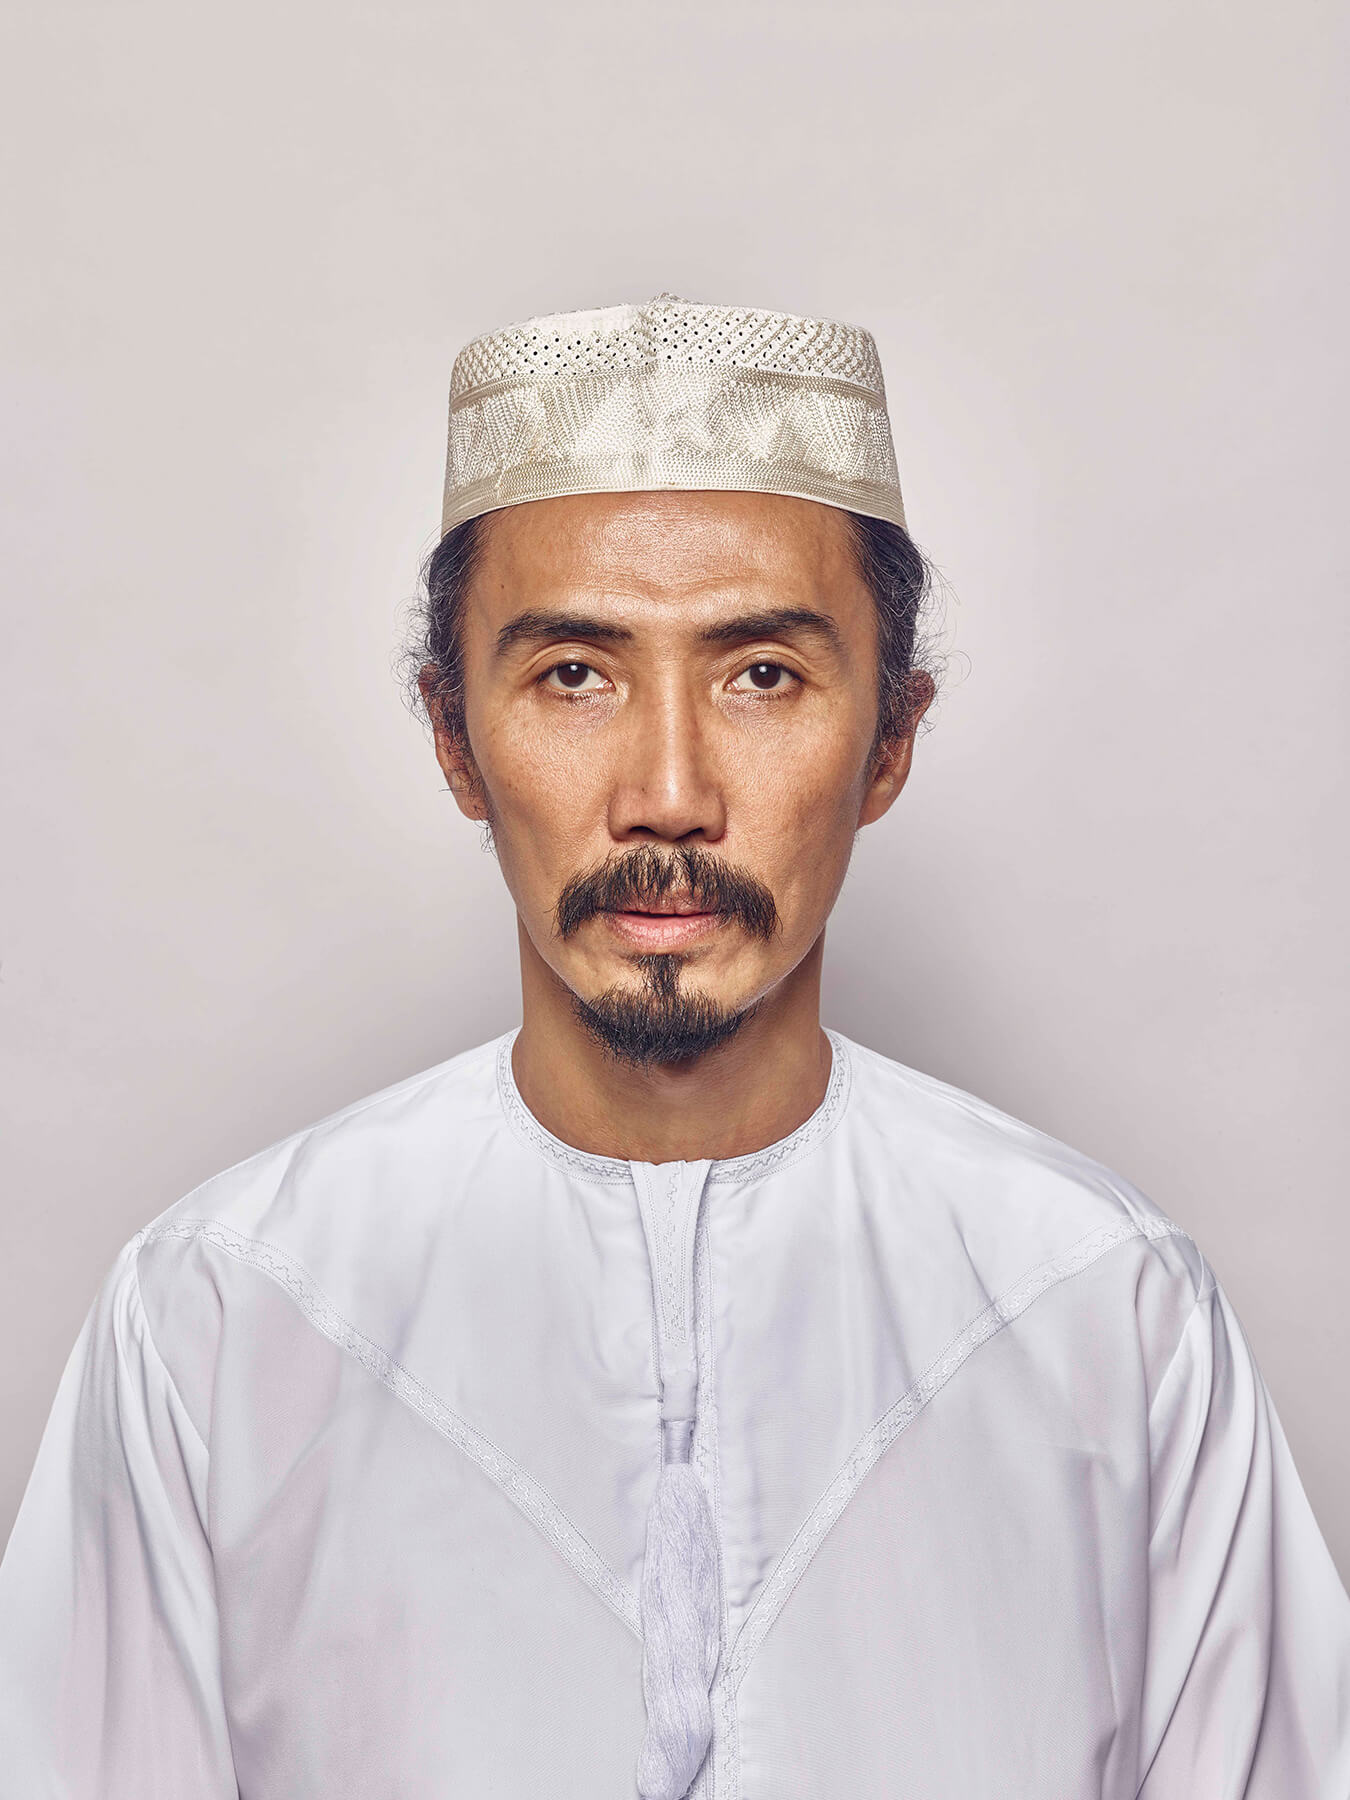 1 Sep 2017: Derong is photographed wearing traditional Muslim men's clothing